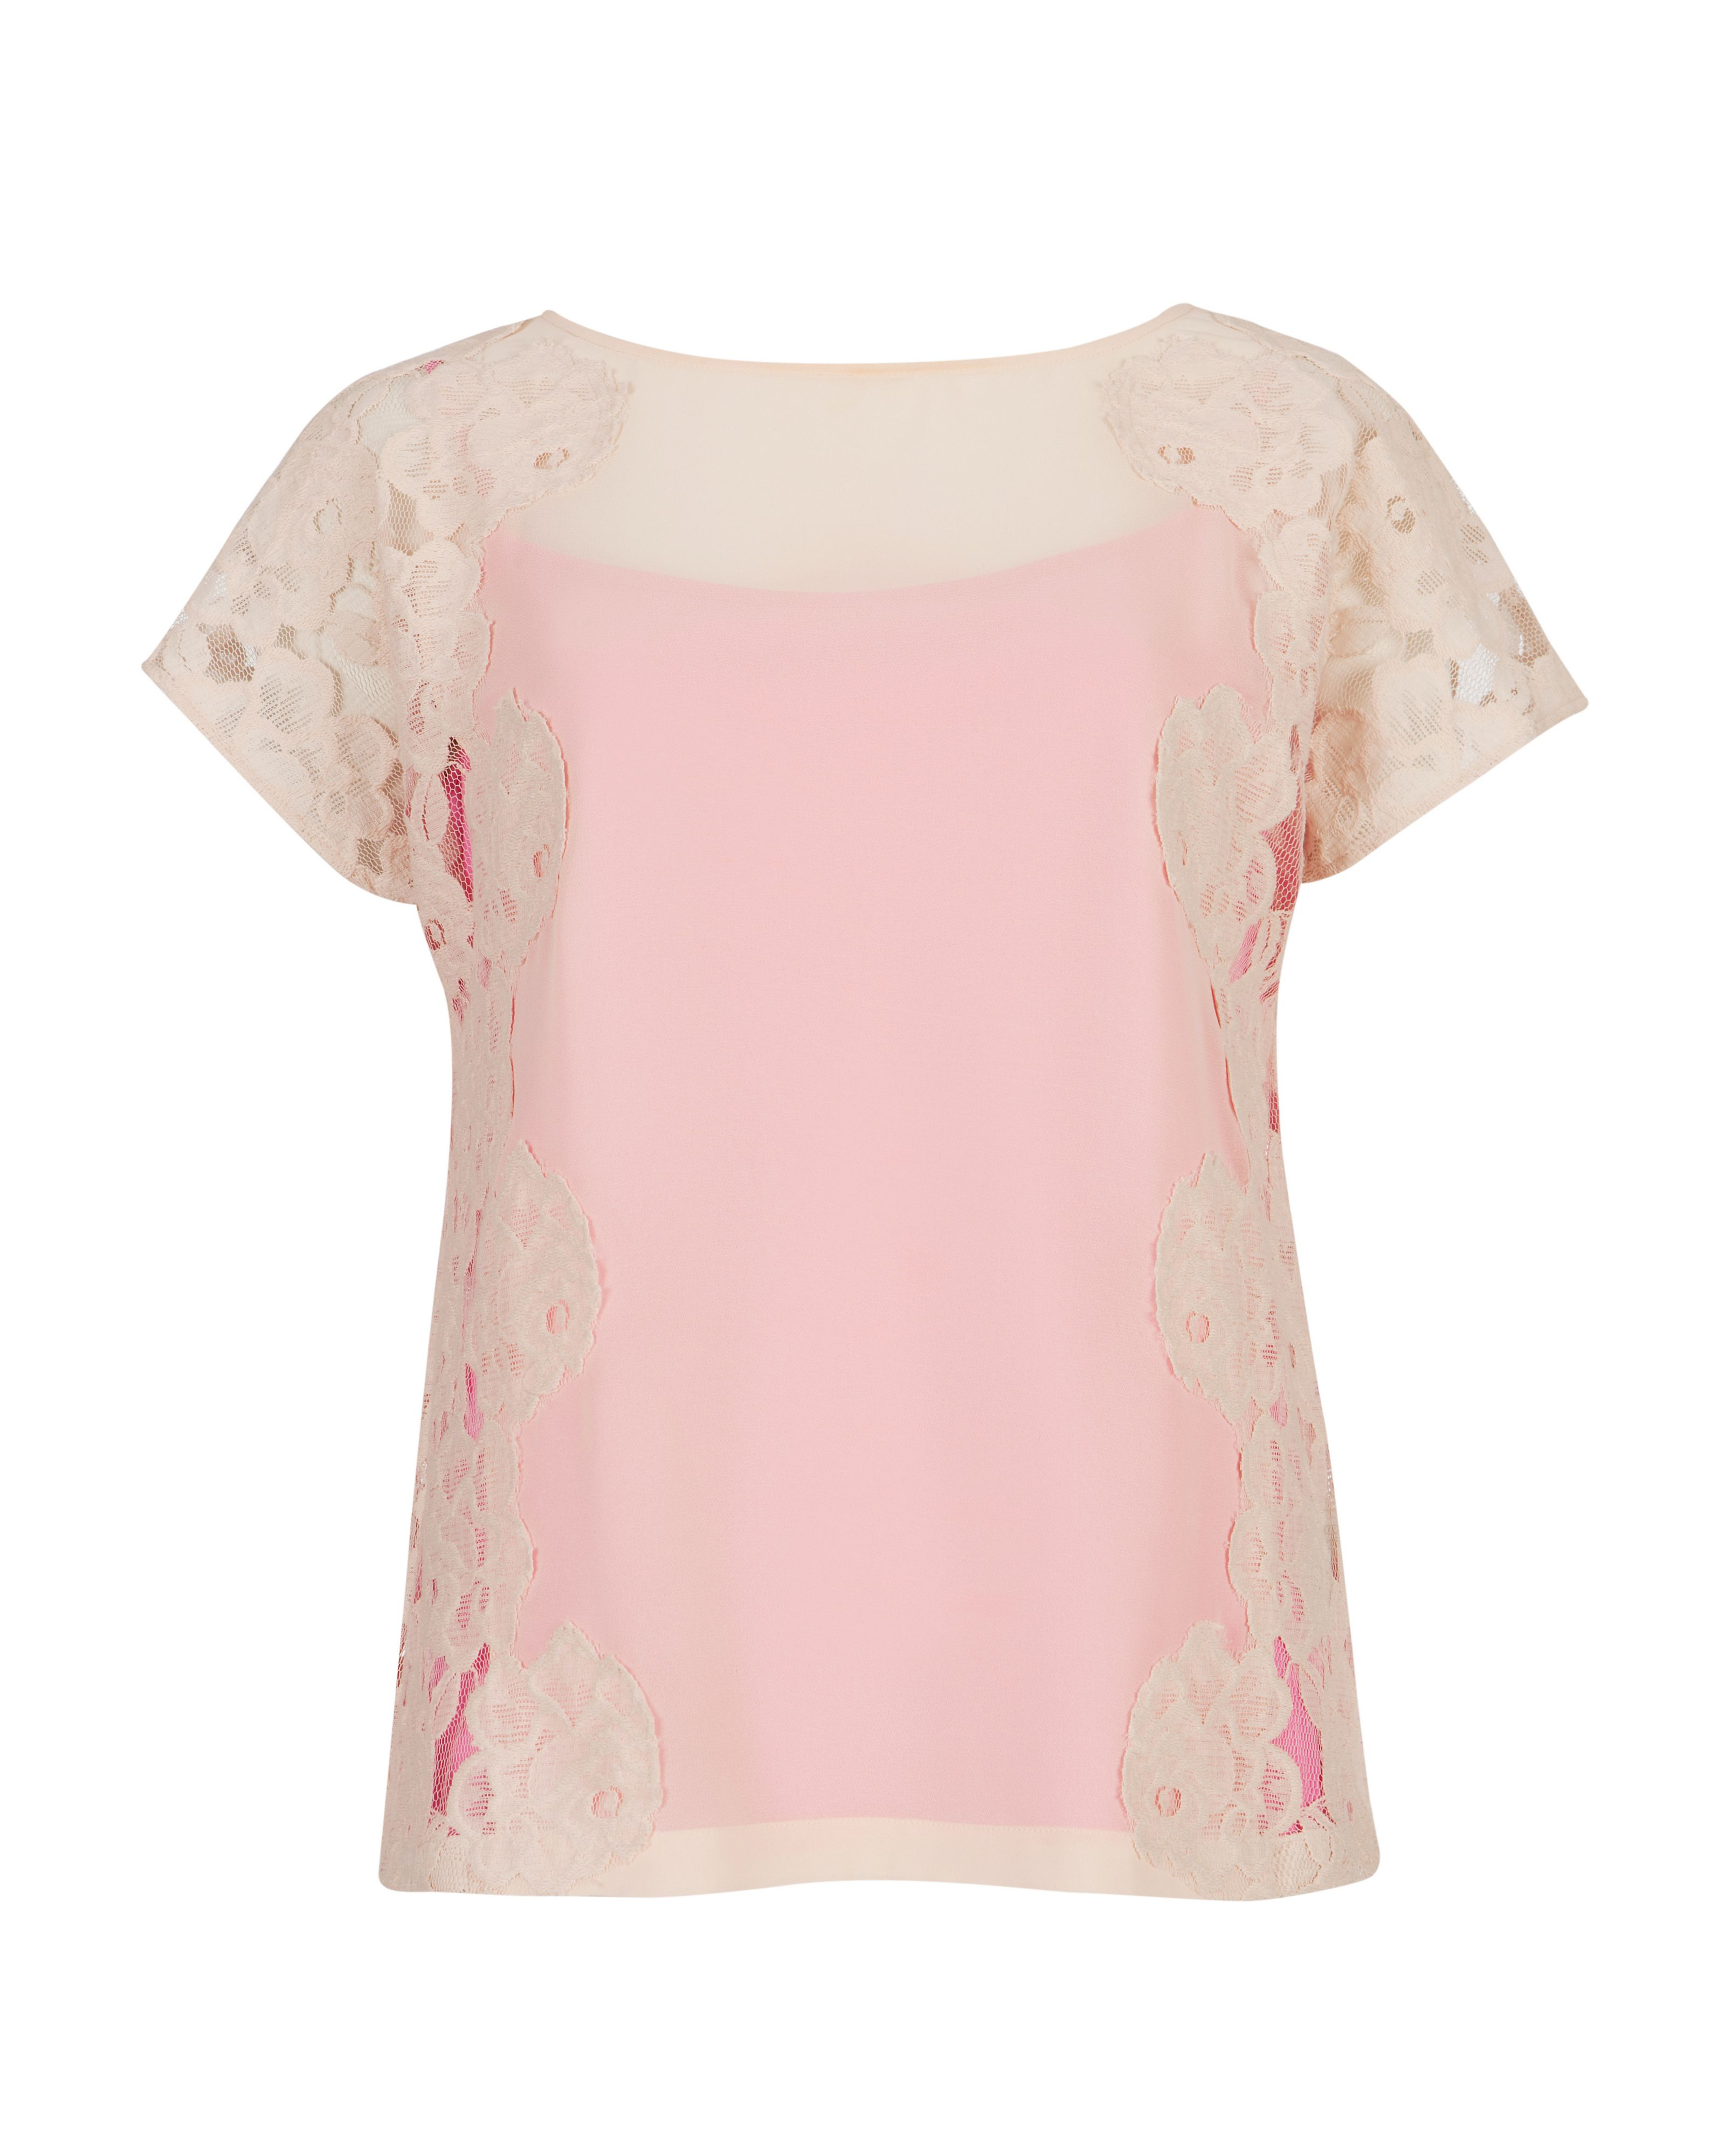 Chasity lace detail top